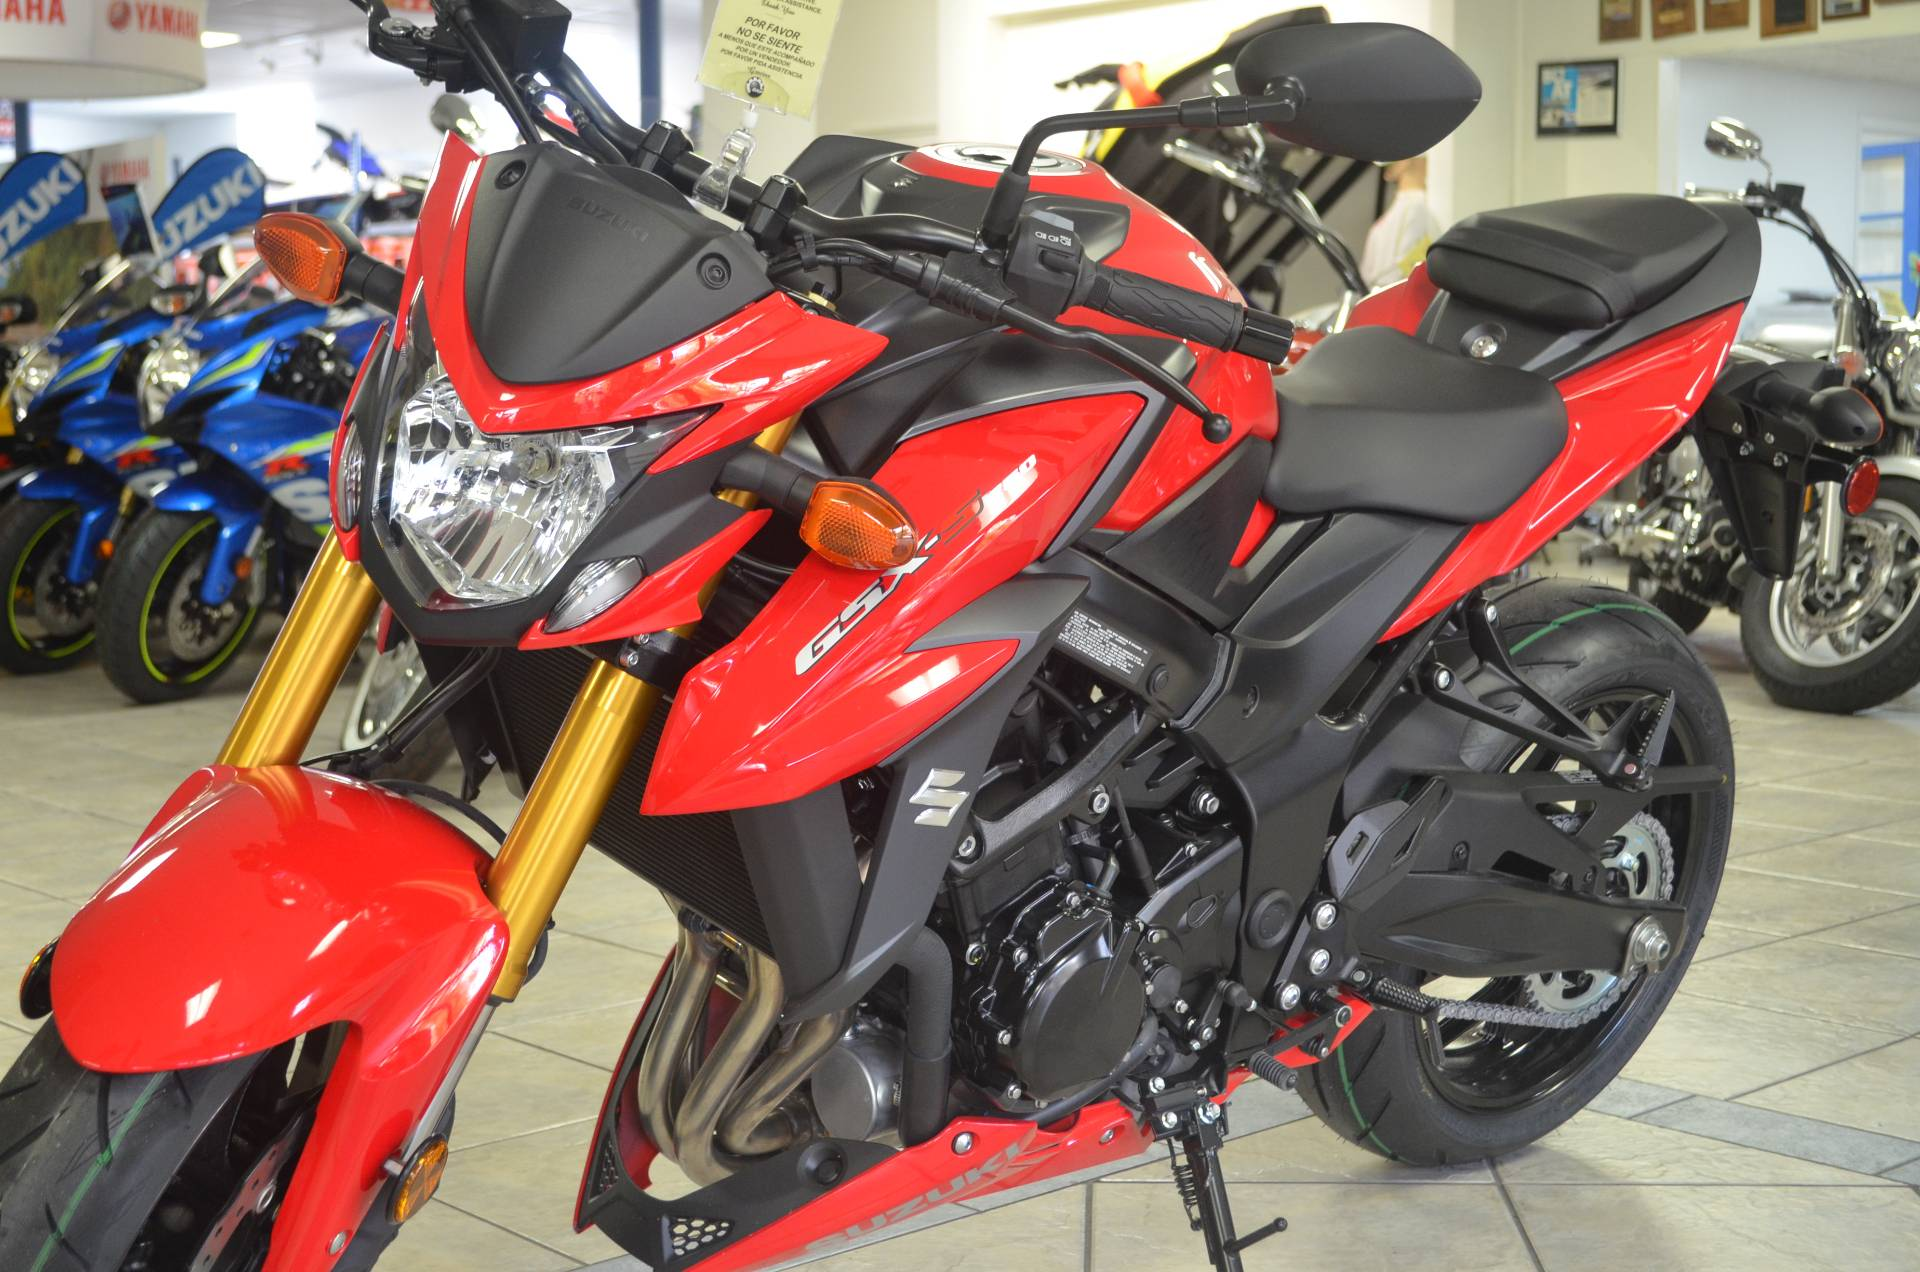 2018 Suzuki GSX-S750 in Miami, Florida